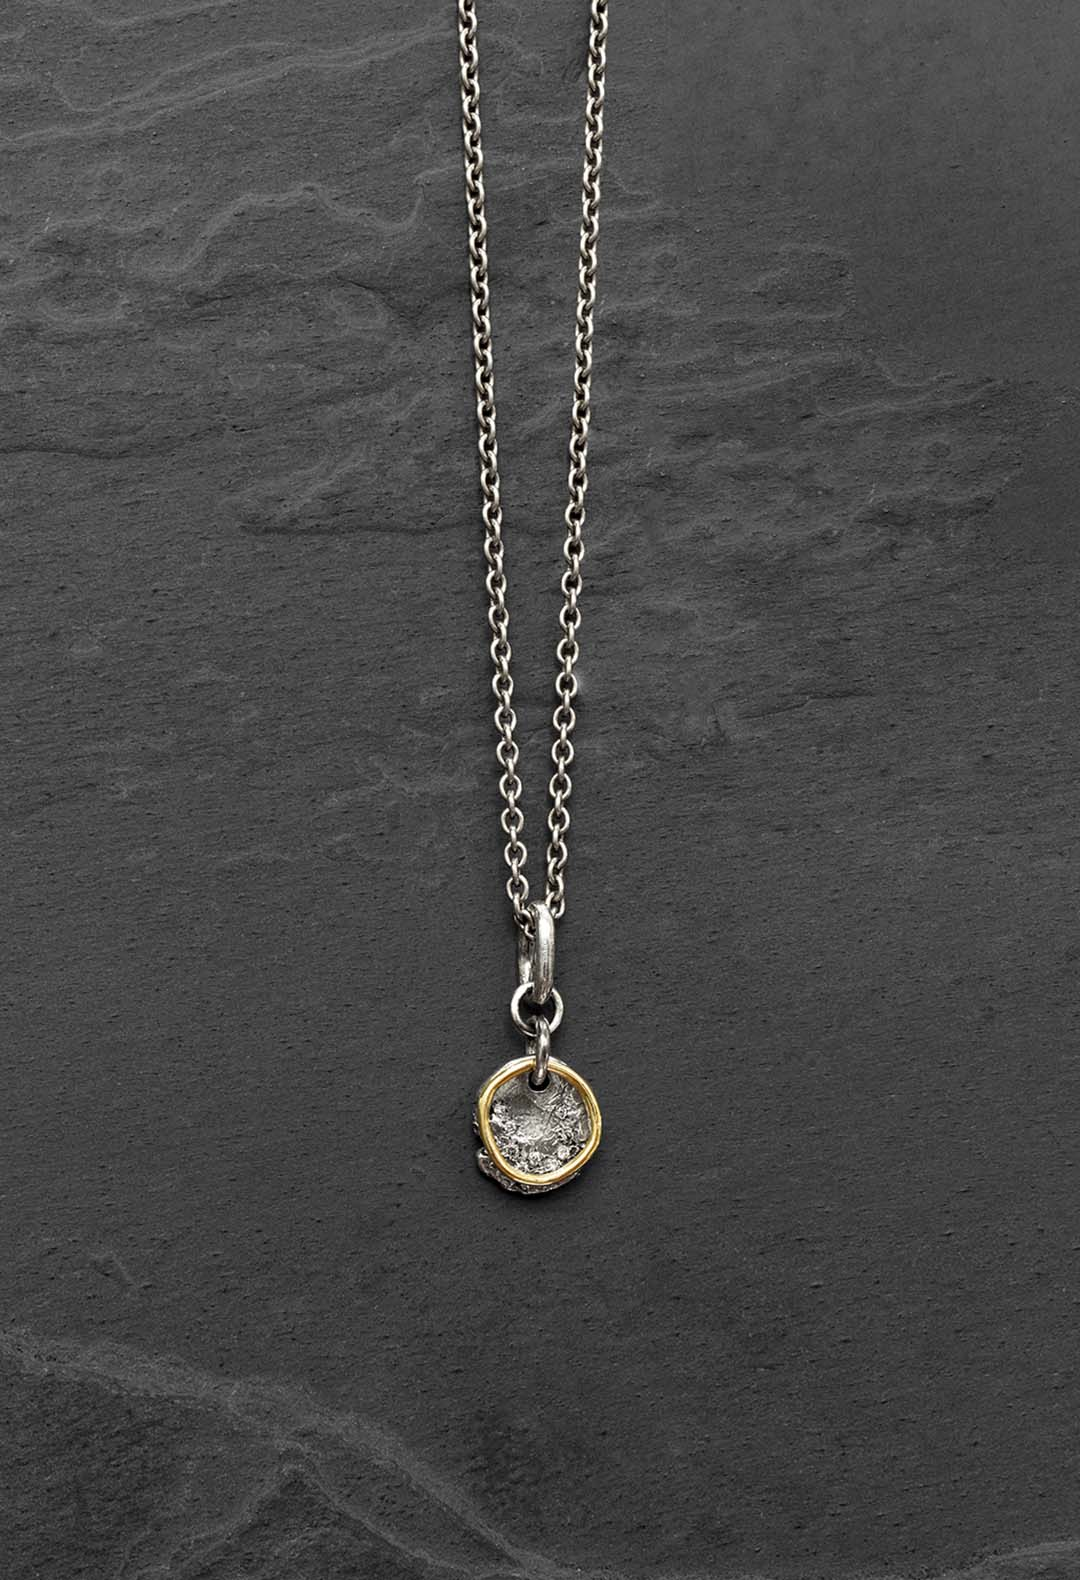 Pendent gold ring necklace